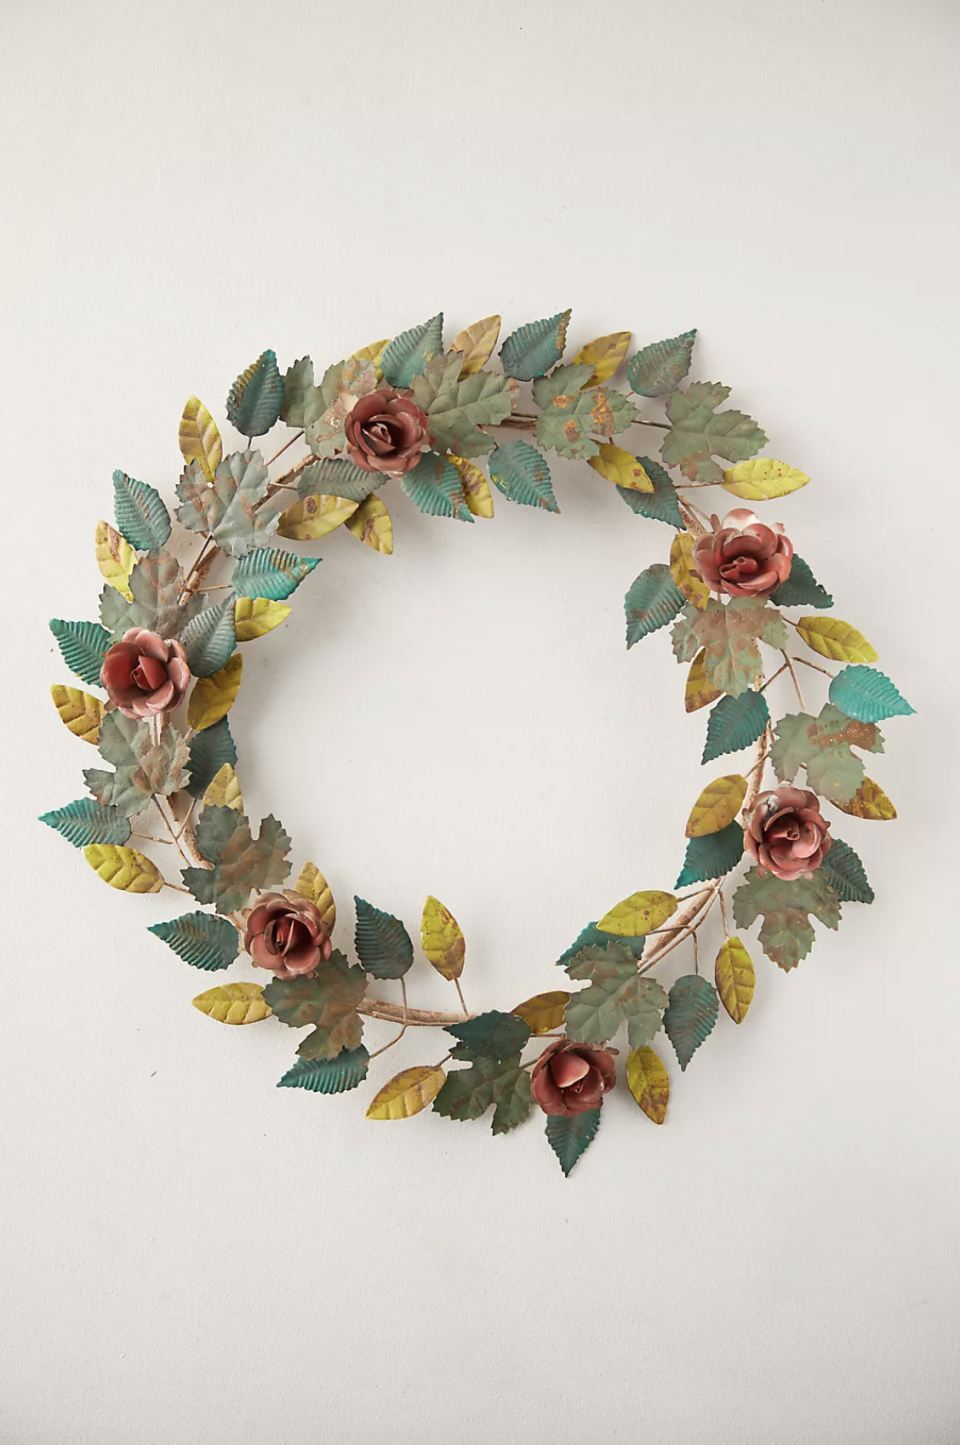 """<p><strong>Terrain</strong></p><p>anthropologie.com</p><p><strong>$78.00</strong></p><p><a href=""""https://go.redirectingat.com?id=74968X1596630&url=https%3A%2F%2Fwww.anthropologie.com%2Fshop%2Frose-leaf-iron-wreath&sref=https%3A%2F%2Fwww.housebeautiful.com%2Fdesign-inspiration%2Fg21287611%2Ffall-door-decorations%2F"""" rel=""""nofollow noopener"""" target=""""_blank"""" data-ylk=""""slk:BUY NOW"""" class=""""link rapid-noclick-resp"""">BUY NOW</a></p><p>This iron and rose wreath boasts a nice aged patina, giving it an old-time-y and sweet feel that will beautify your door for fall and beyond so you can reuse it. </p>"""